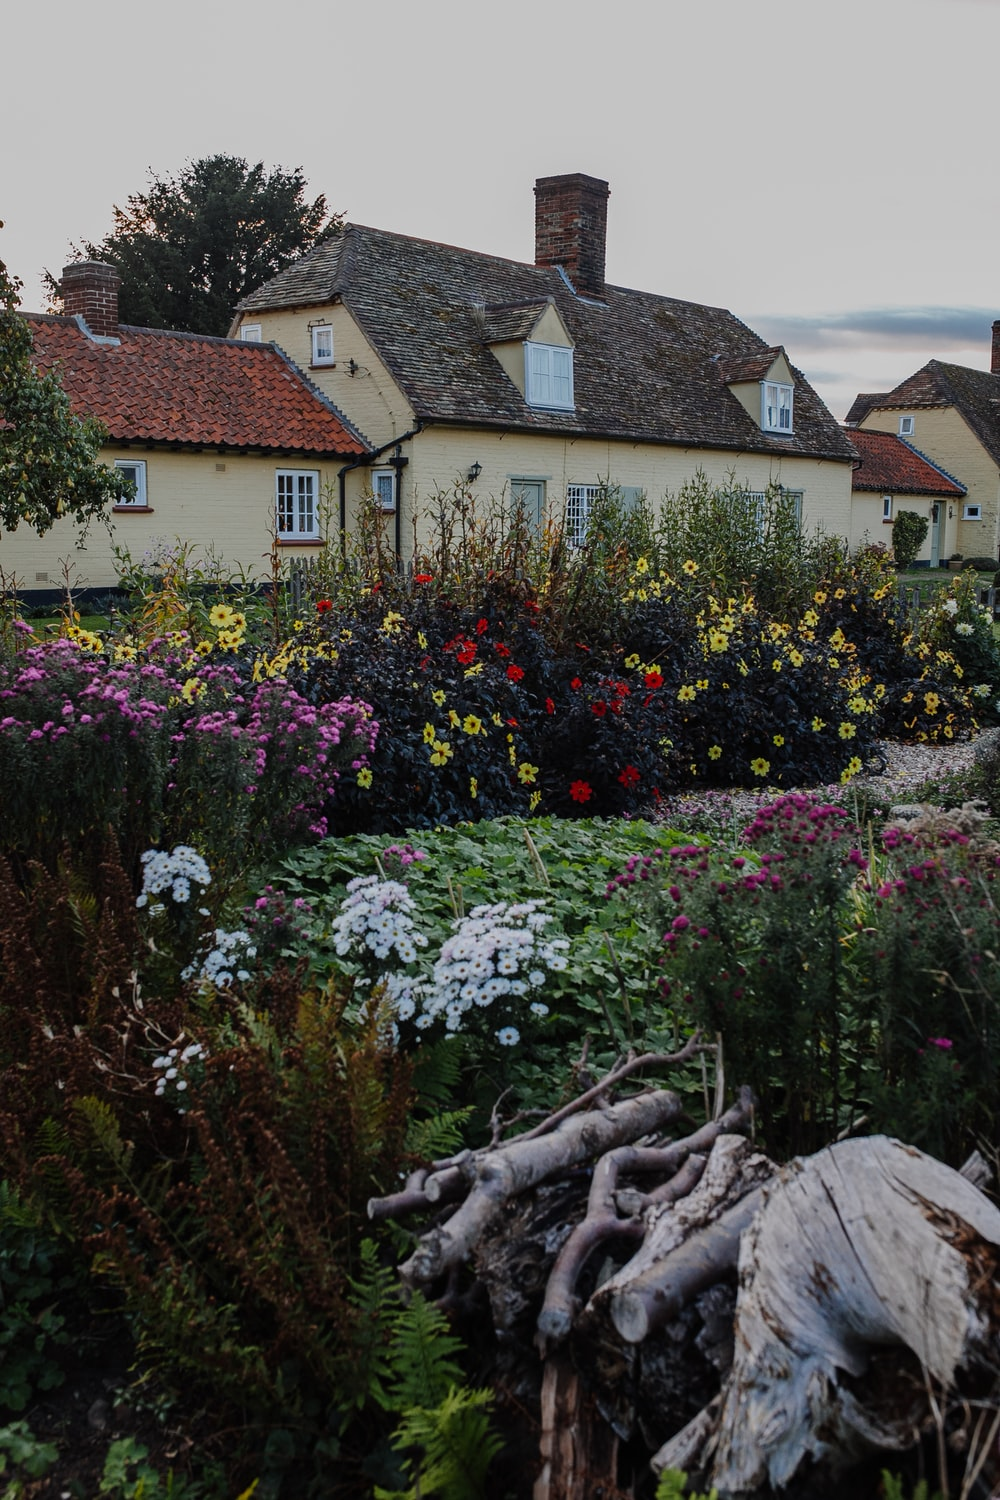 houses and flower garden during daytime